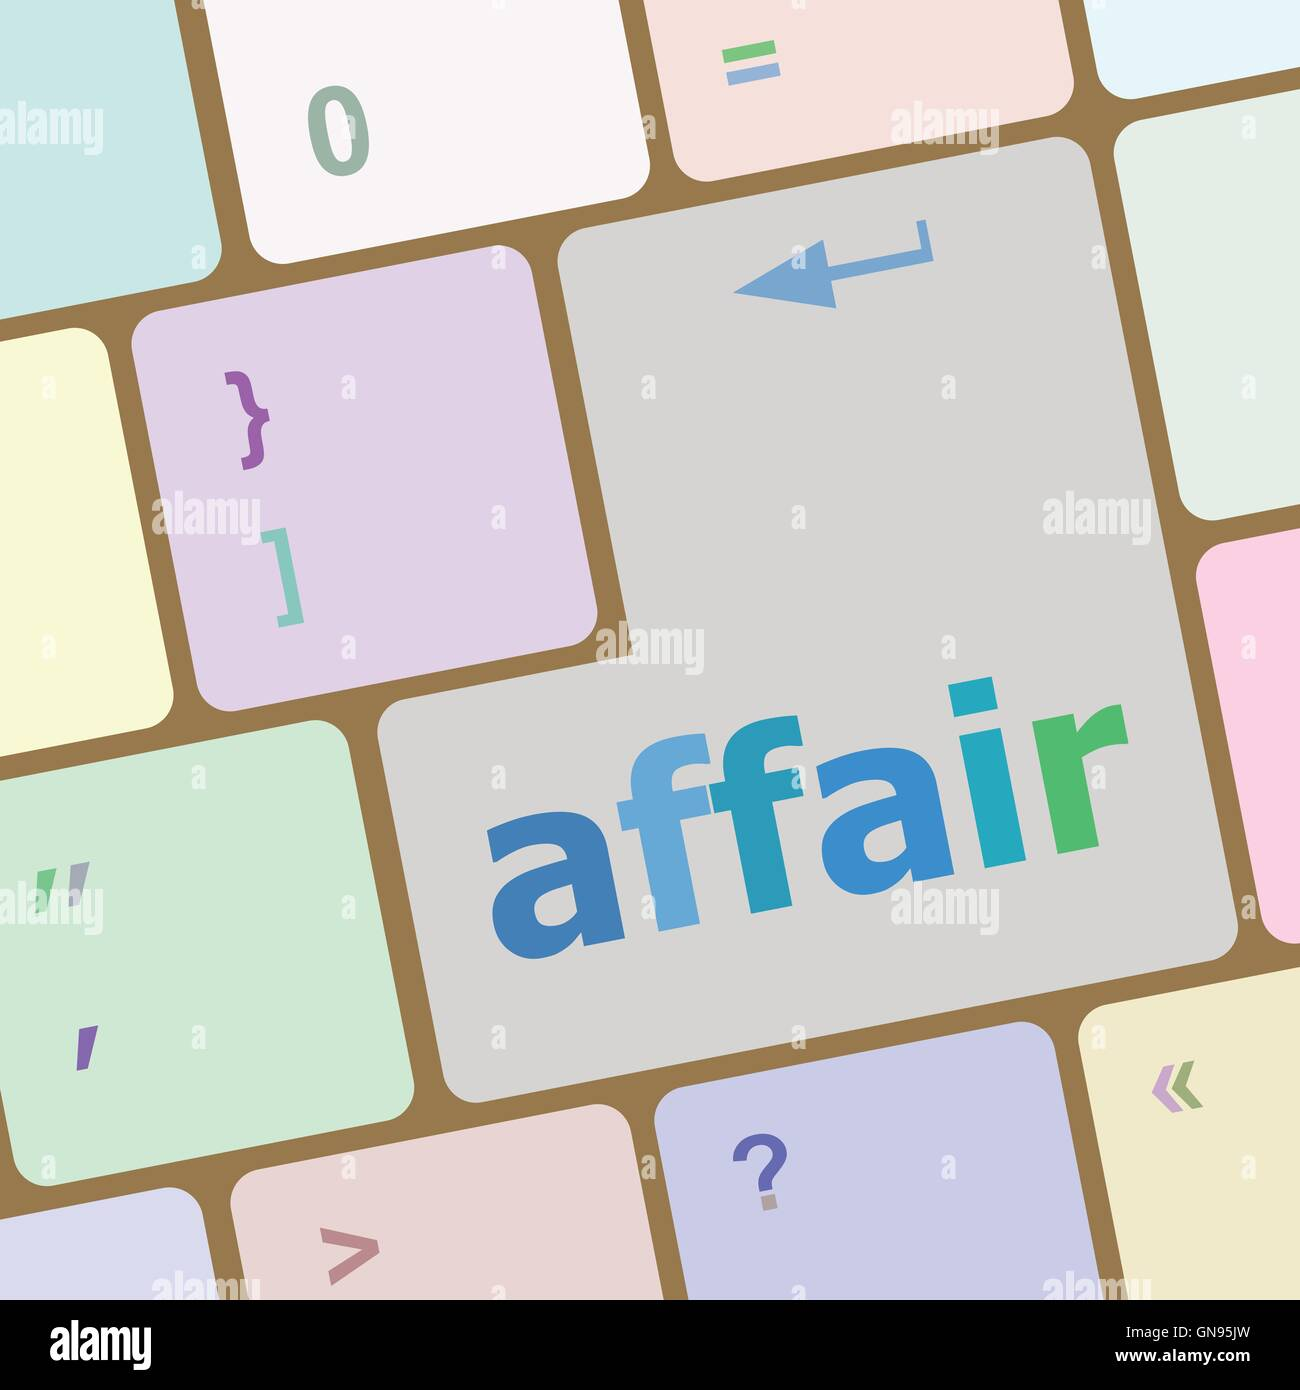 computer keyboard keys, affair word vector illustration - Stock Image